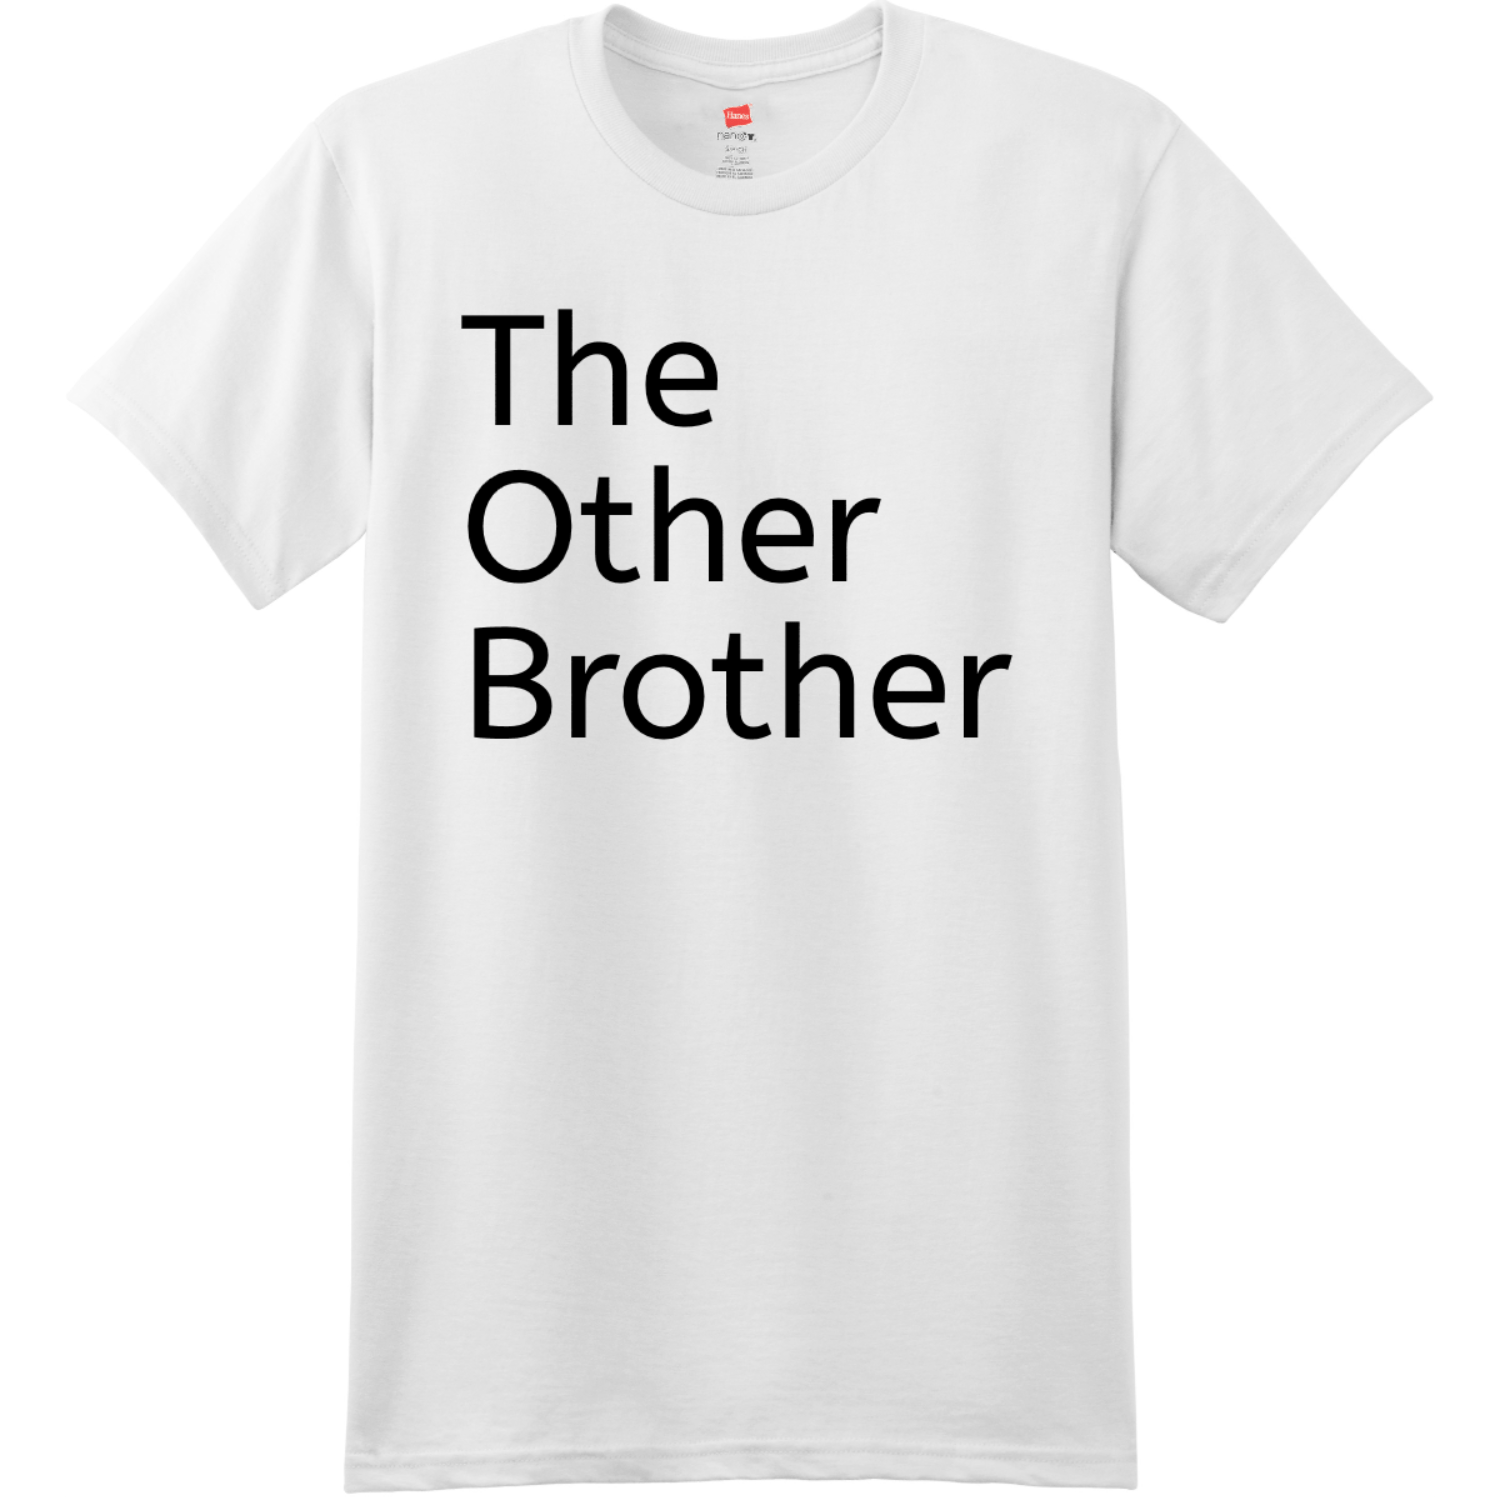 The Other Brother T Shirt White Hanes Nano 4980 Ringspun Cotton T Shirt